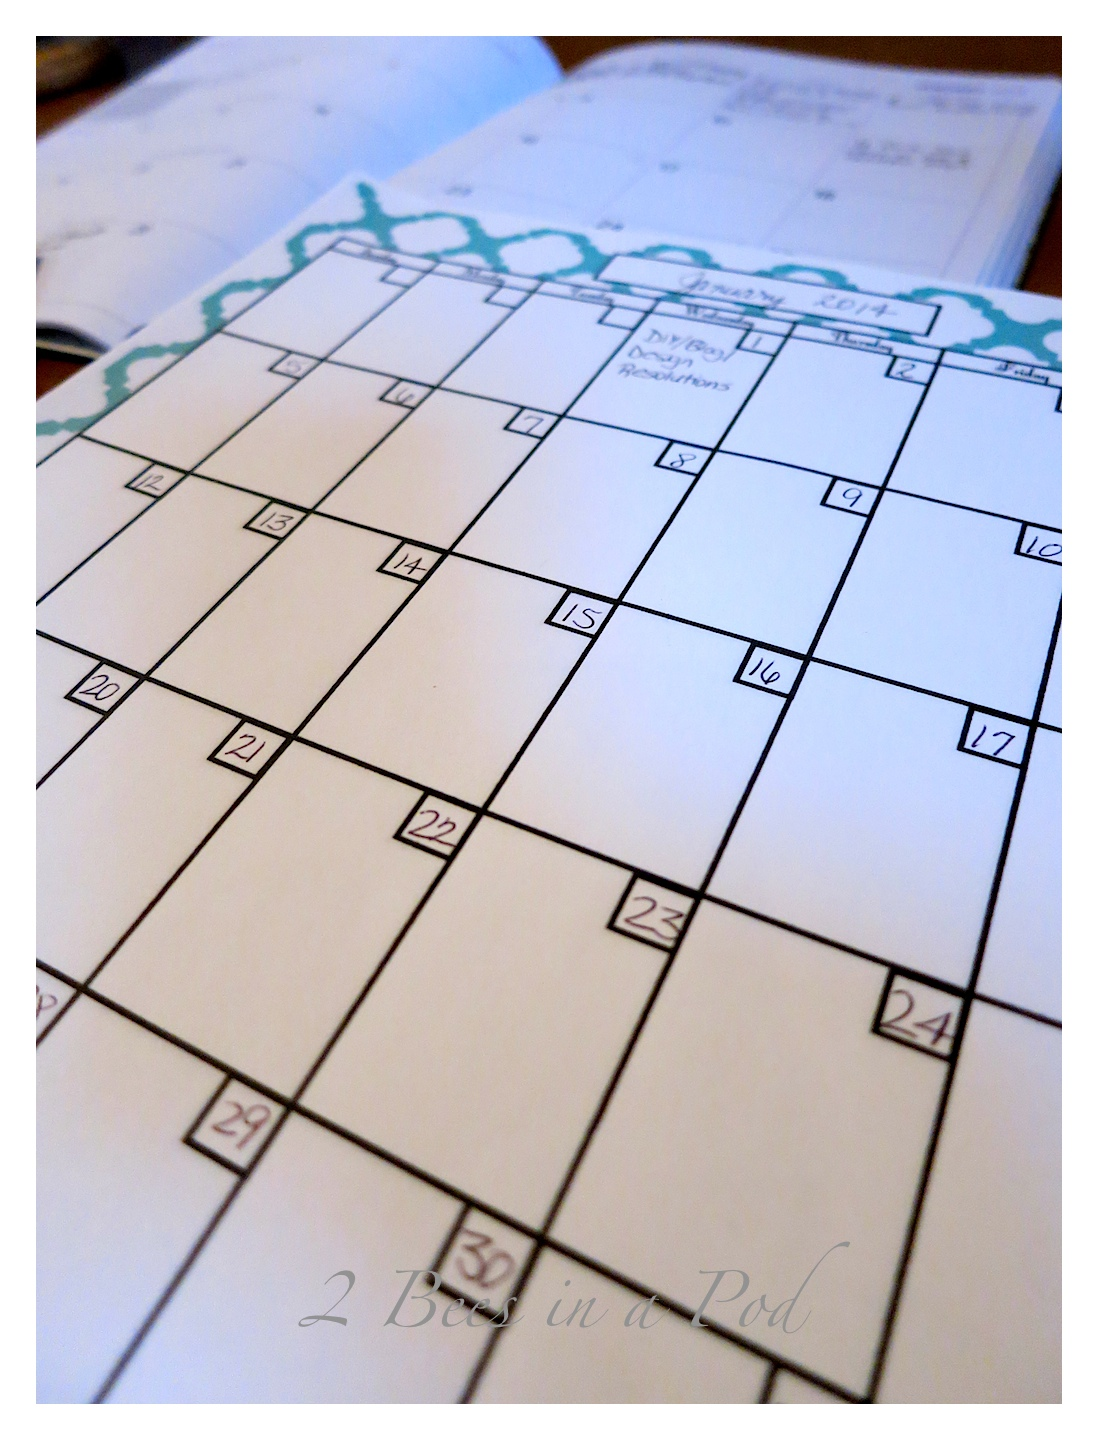 It's a New Year...resolutions to be organized, healthier, better blogger. It's easy to stay organized with this bloggers planner.